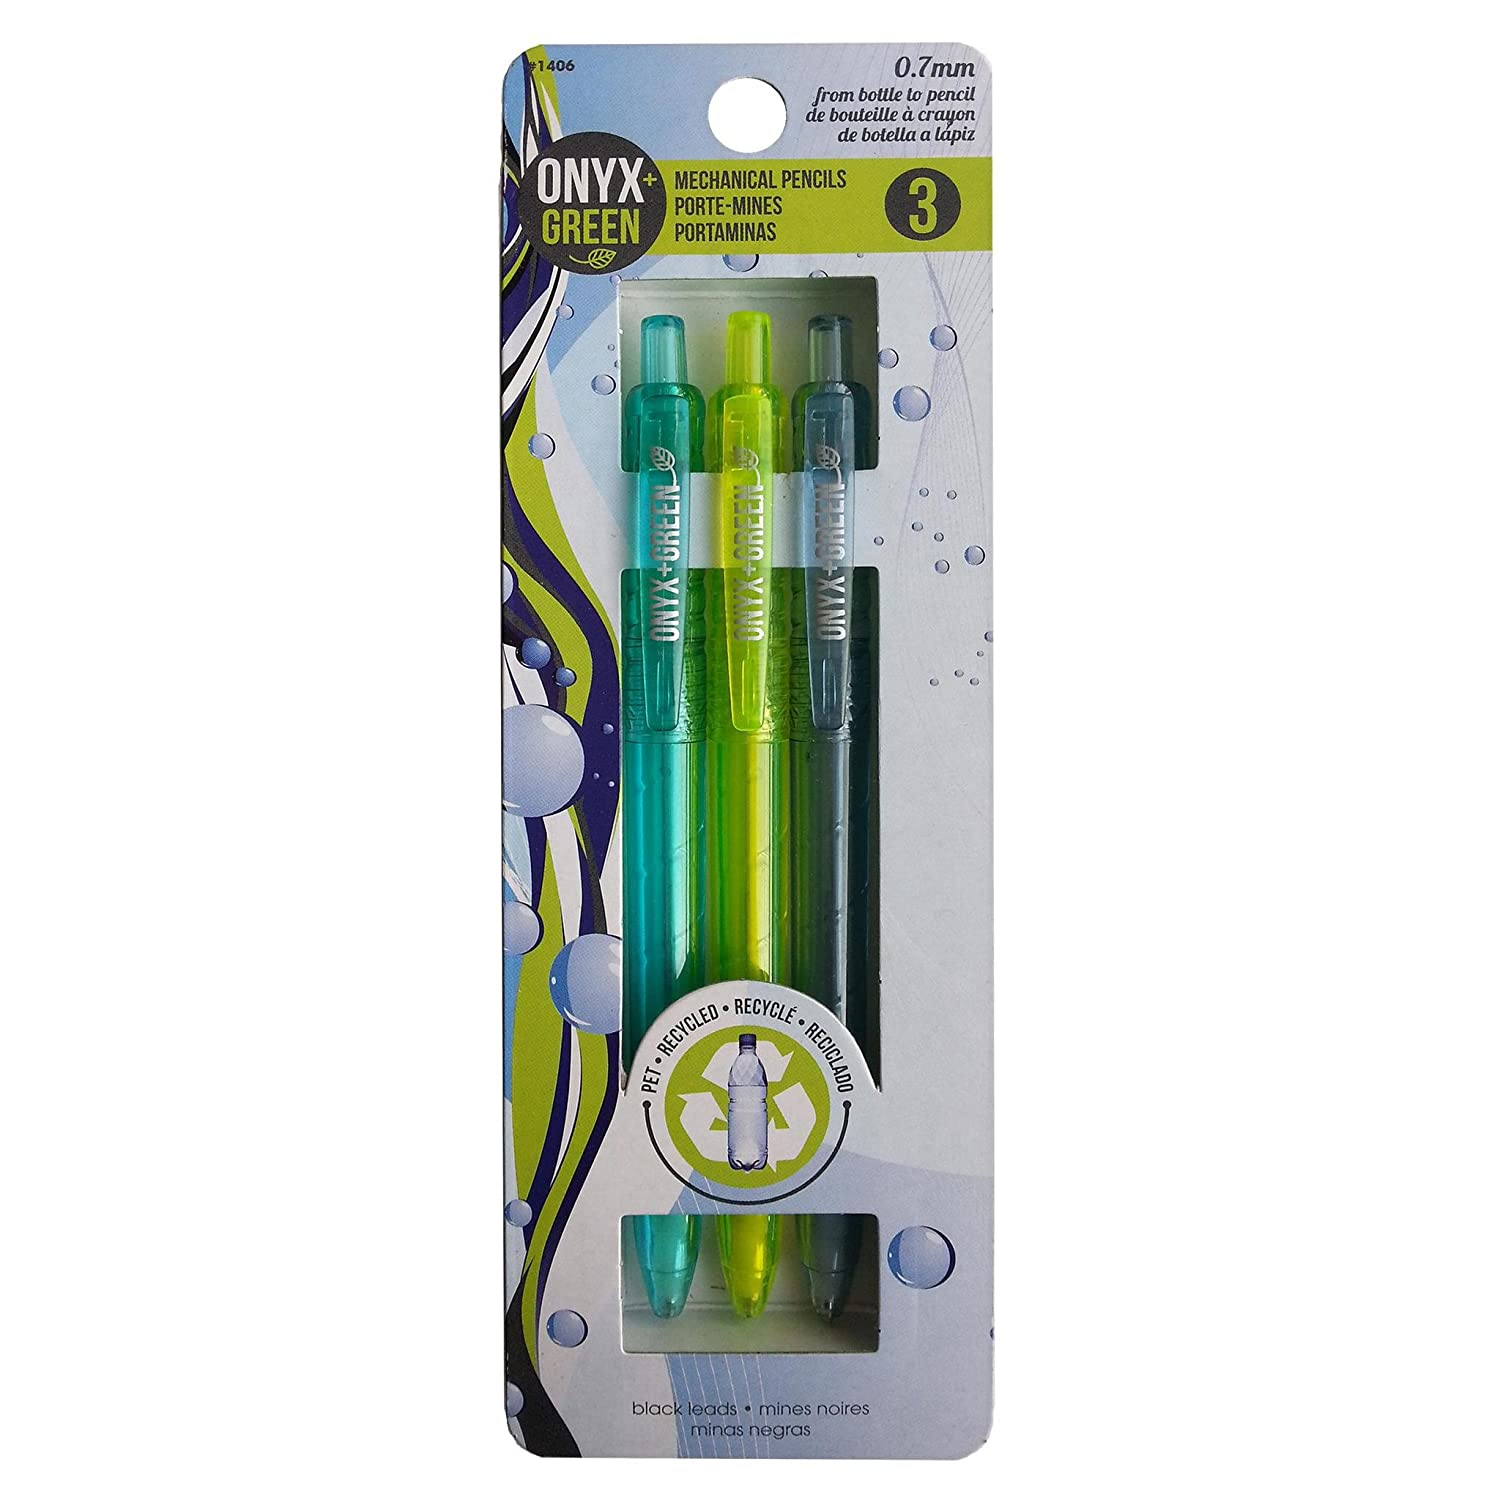 Amazon.com : Recycled Sustainable Materials Green Eco Friendly School Supplies Kit - Pen Pencils Sharpener - Made from Recycled Water Bottles : Office ...